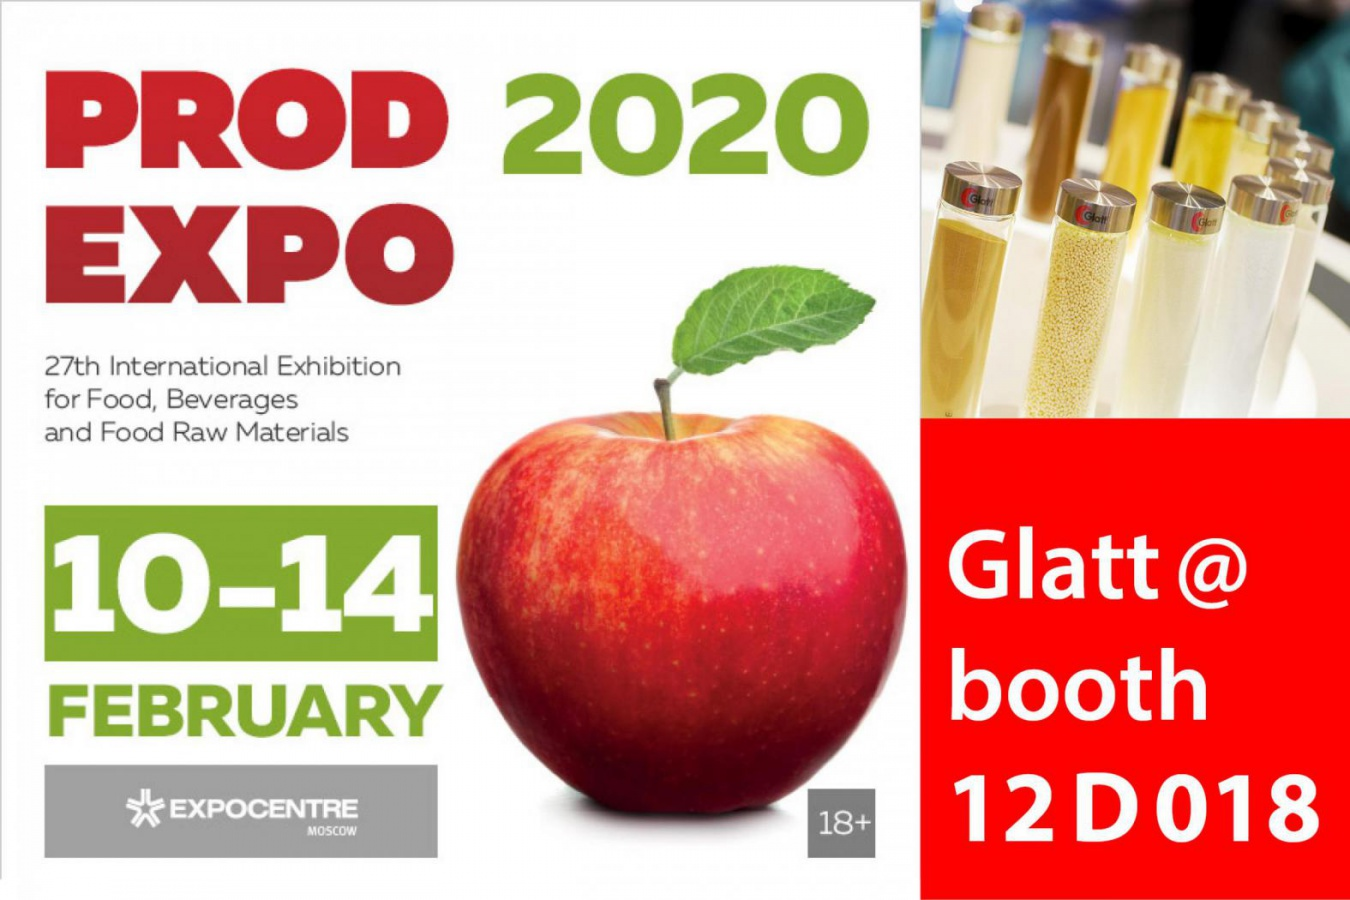 Prodexpo 2020, Moscow: Meet the Glatt Experts @ booth 12D018 Check out the advantages of innovative particle design of your food and feed ingredients